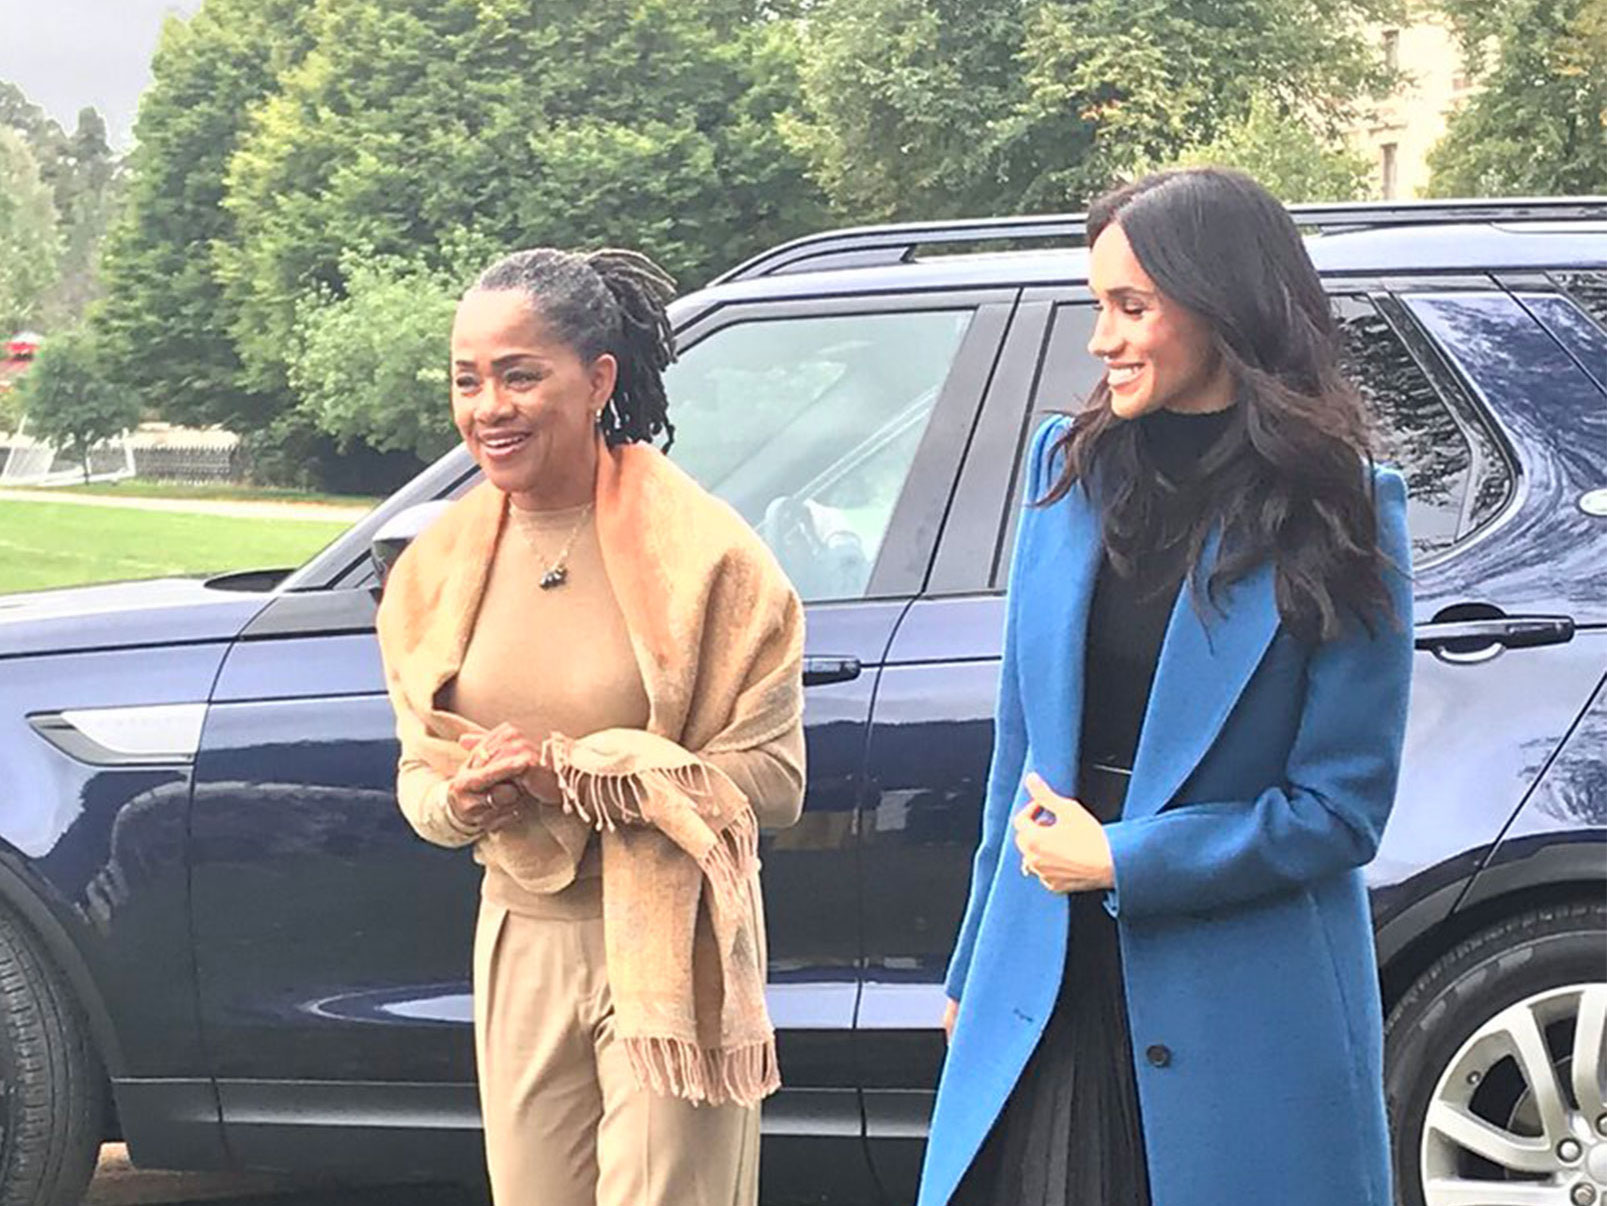 Meghan Markle Hosts Palace Party for Charity Cookbook with Prince Harry and Mom Doria by Her Side